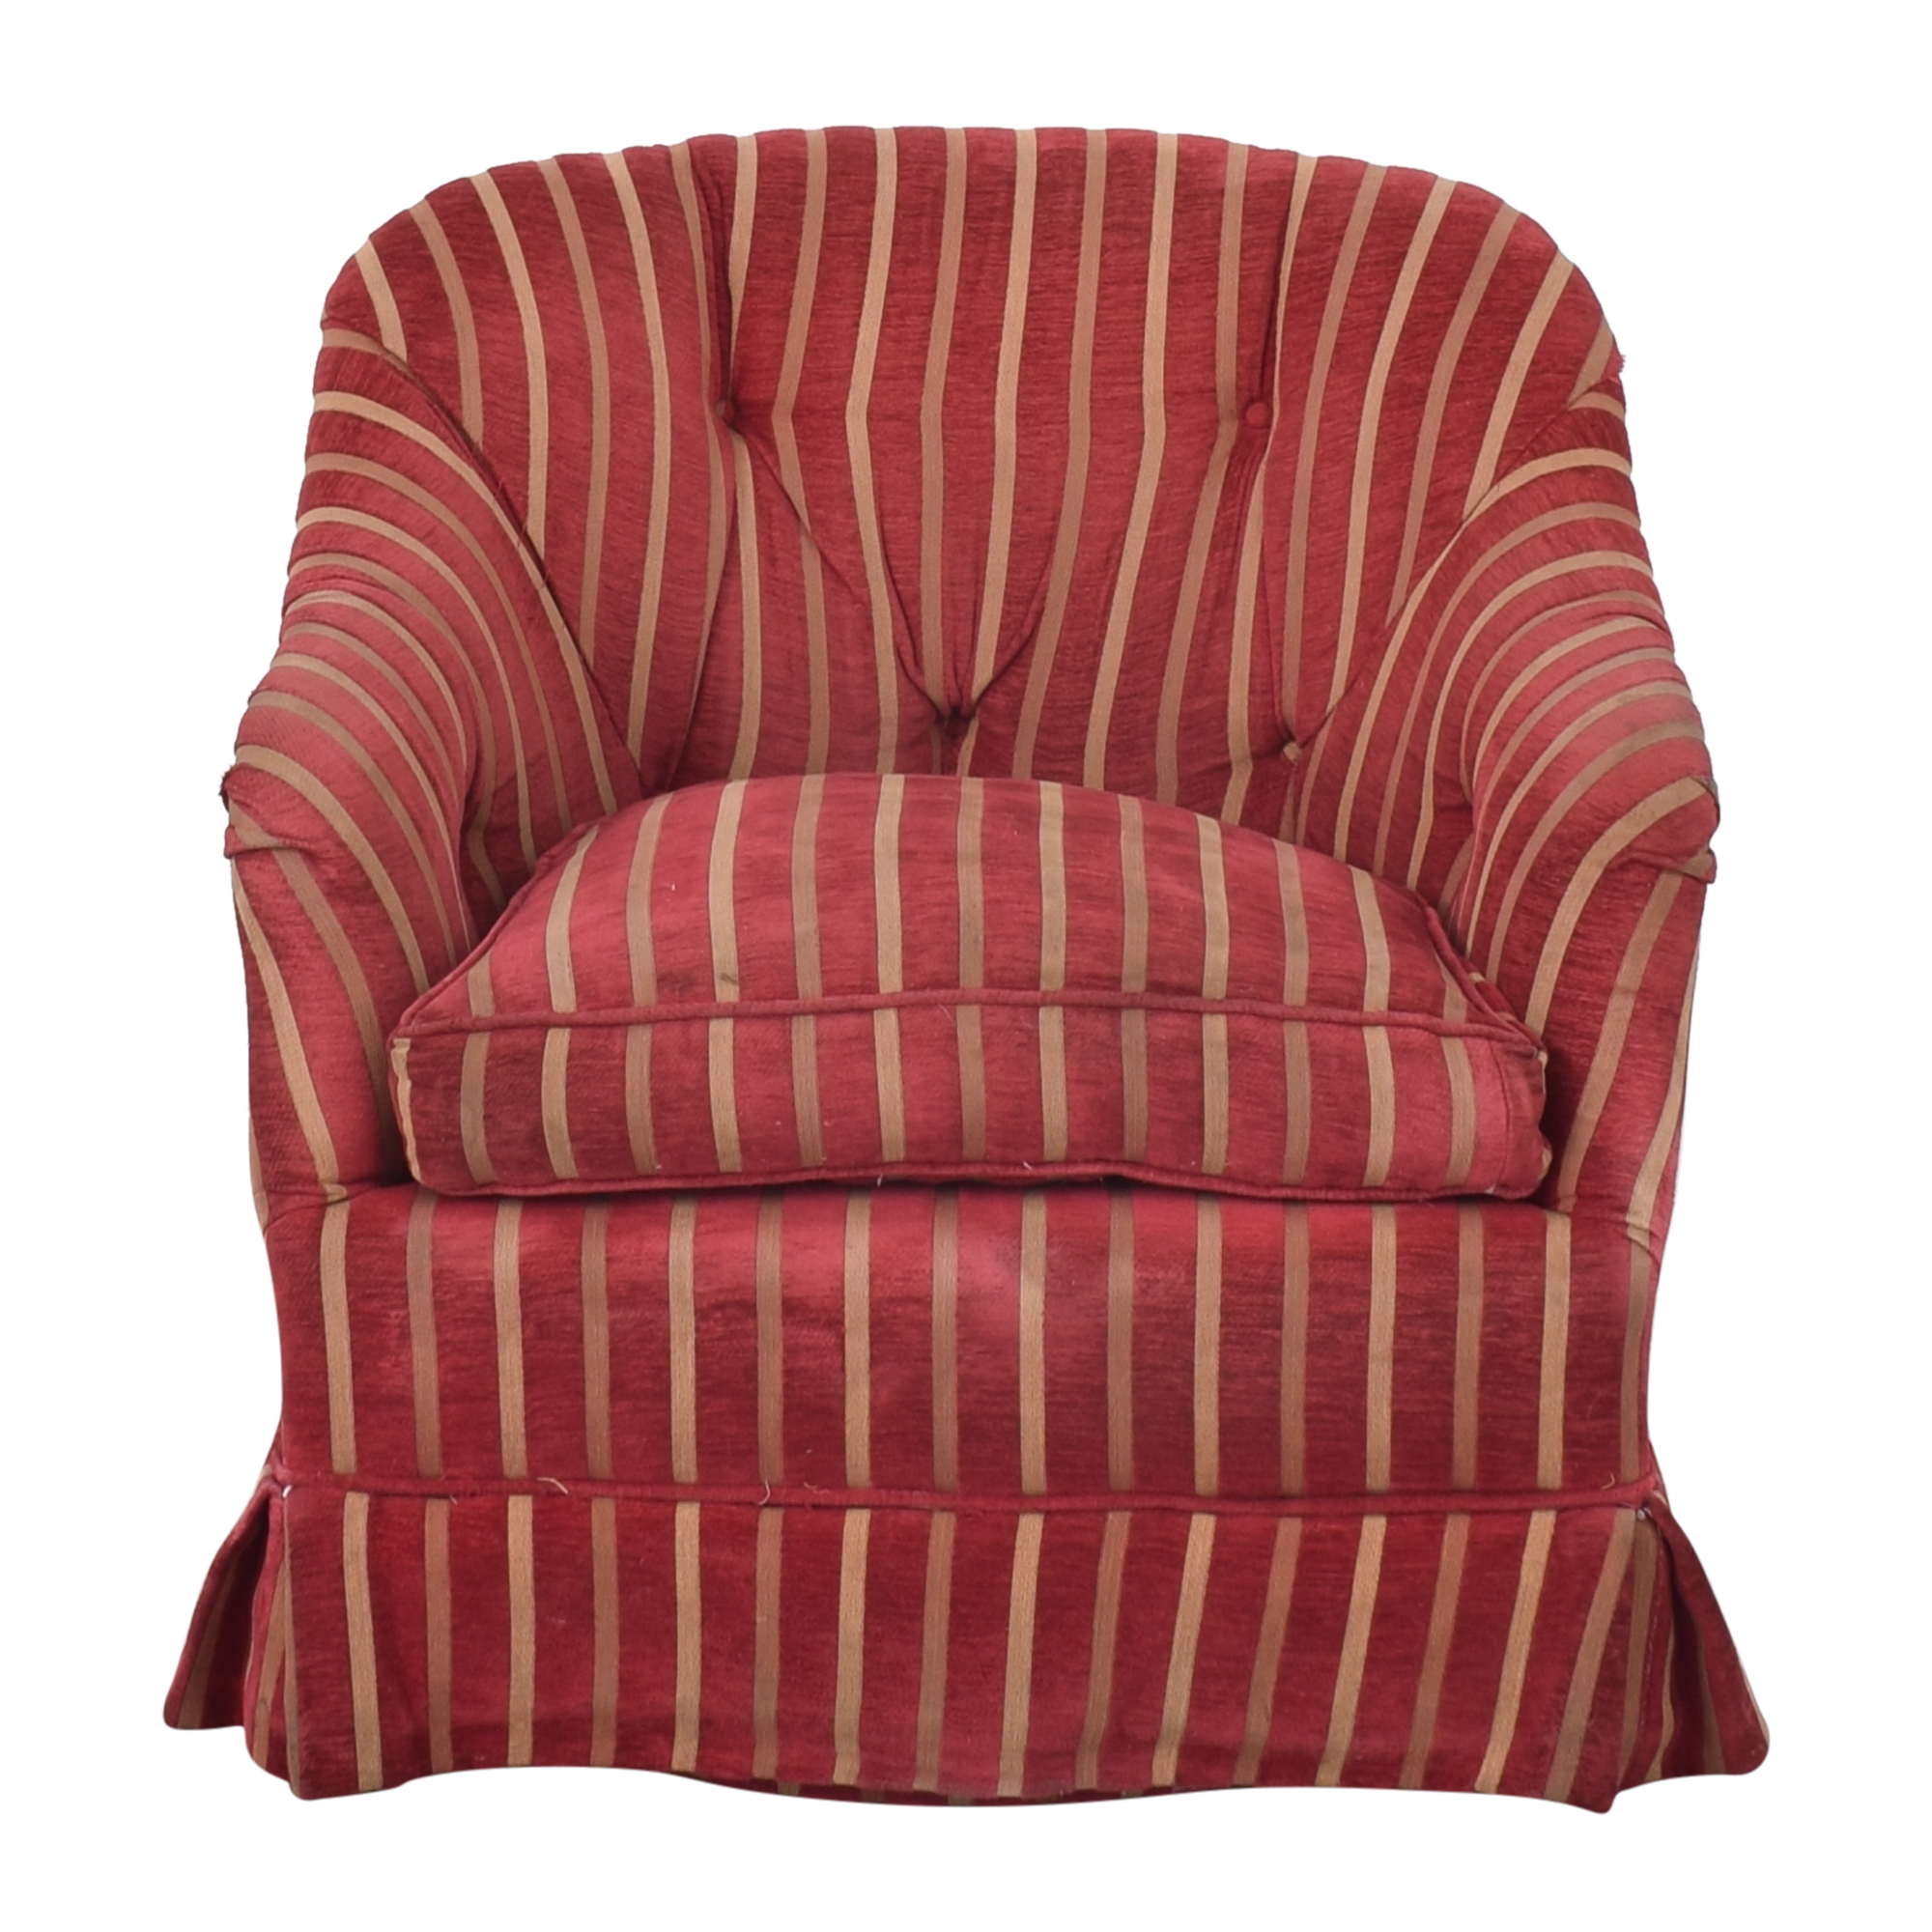 shop Pin-Tucked Swivel Arm Chair